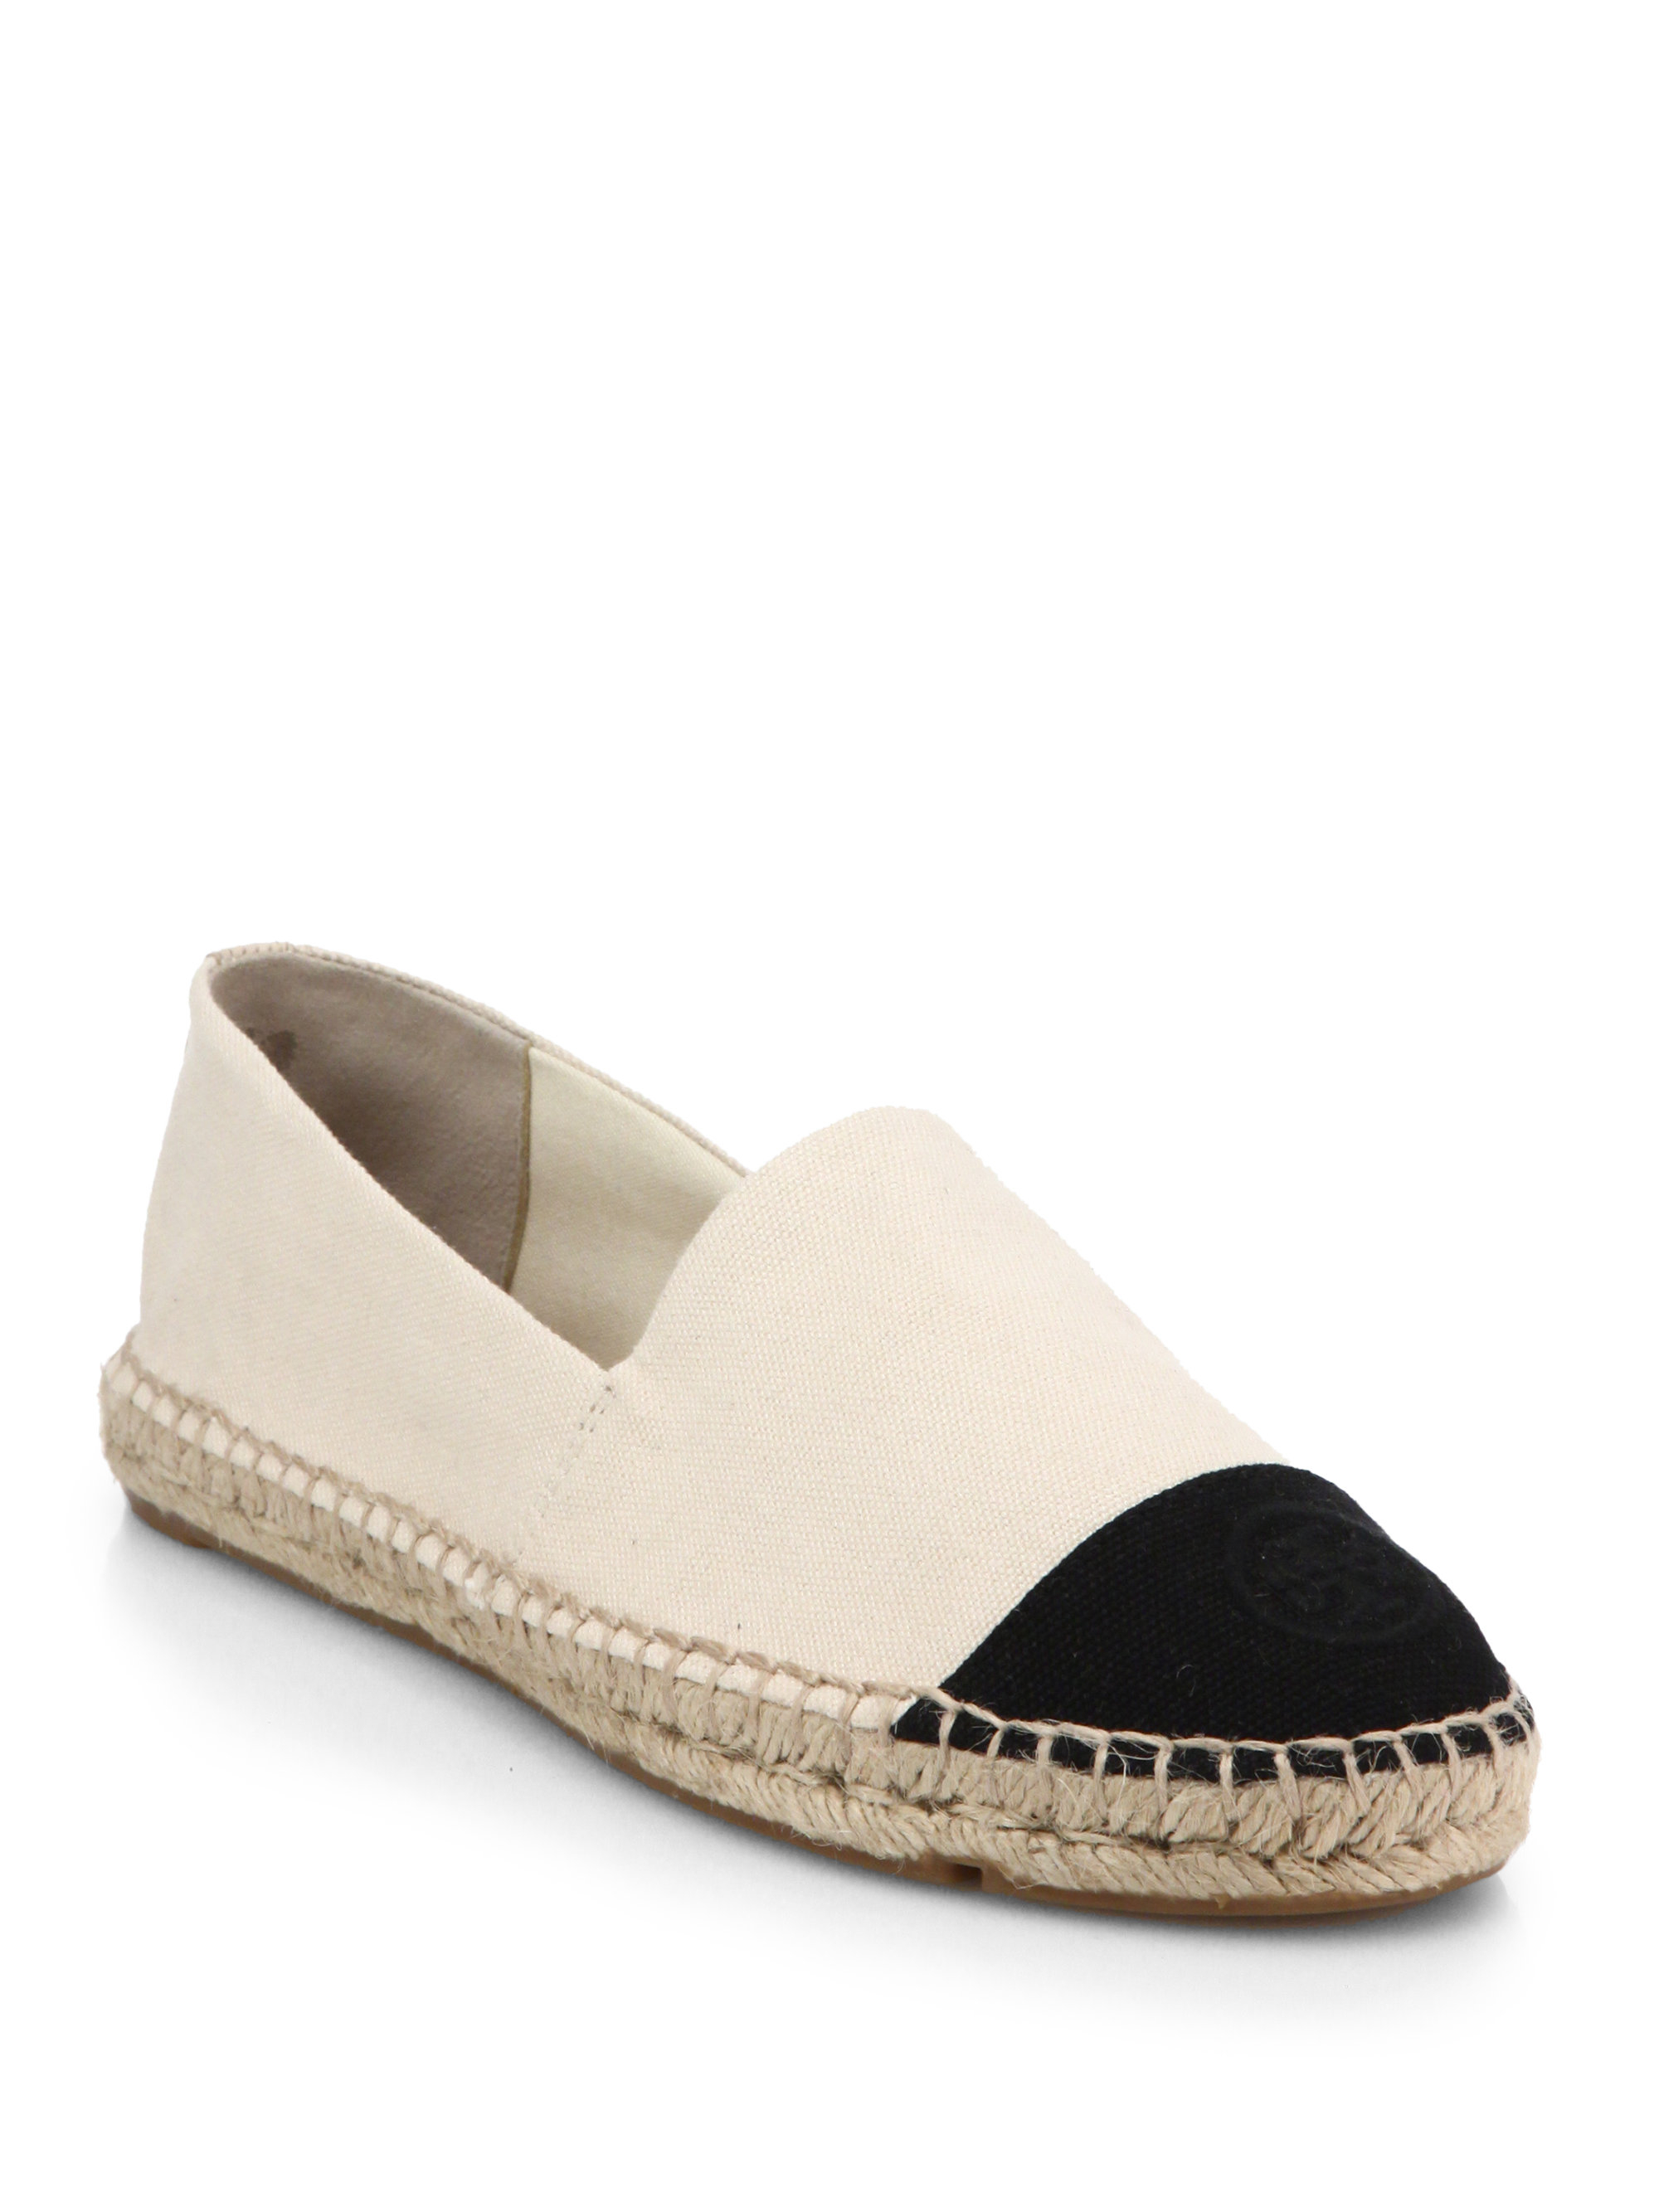 Tory Burch Colorblocked Canvas